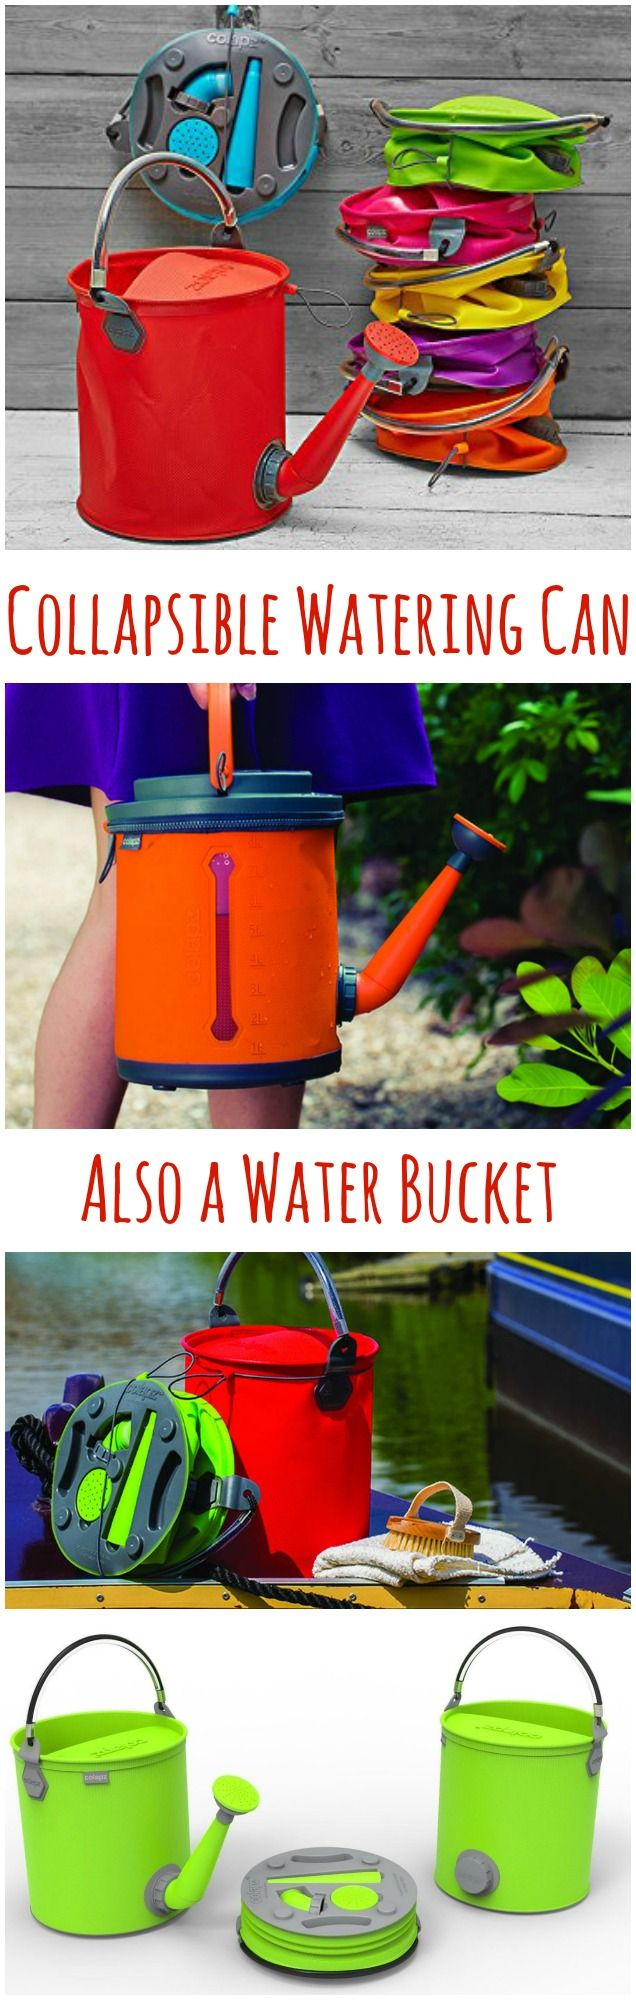 Collapsible 2-in-1 Watering Can functions as a watering can and converts to a 1.7 gallon capacity water bucket. #affiliate